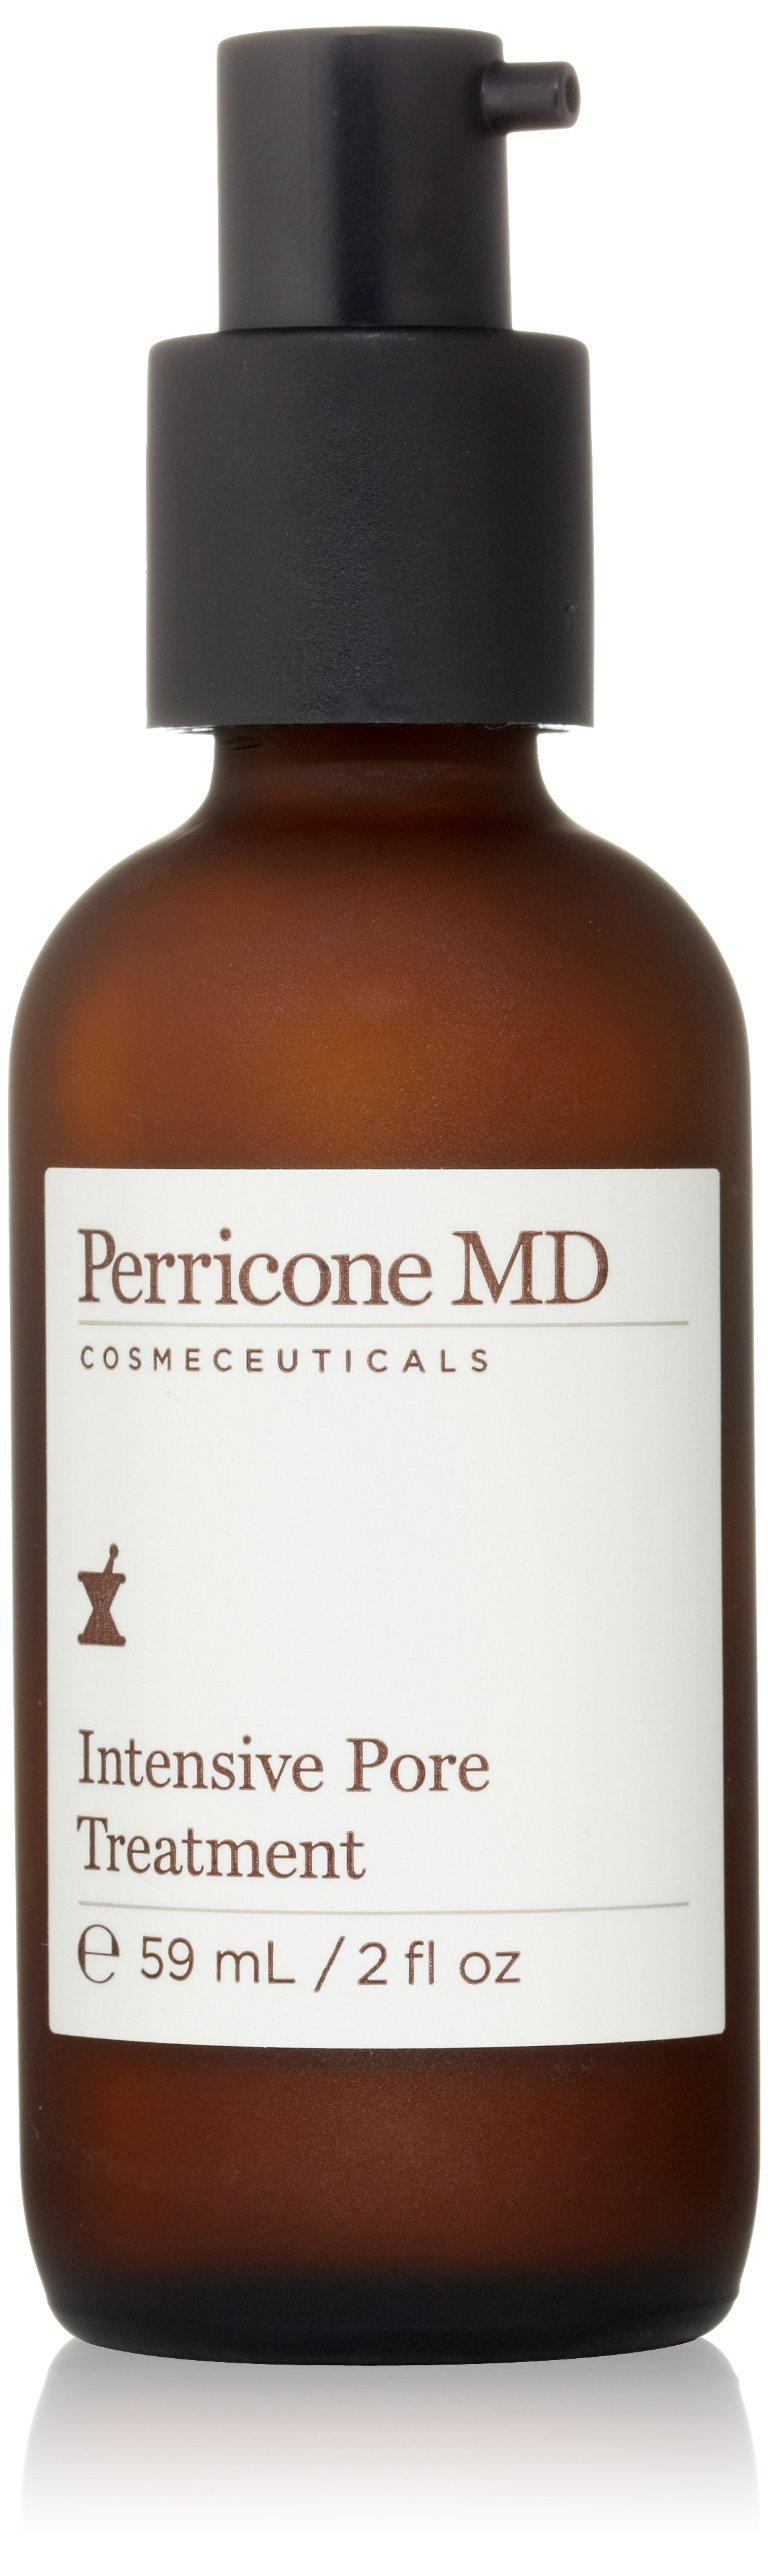 Perricone MD Intensive Pore Treatment, 2 fl. oz.